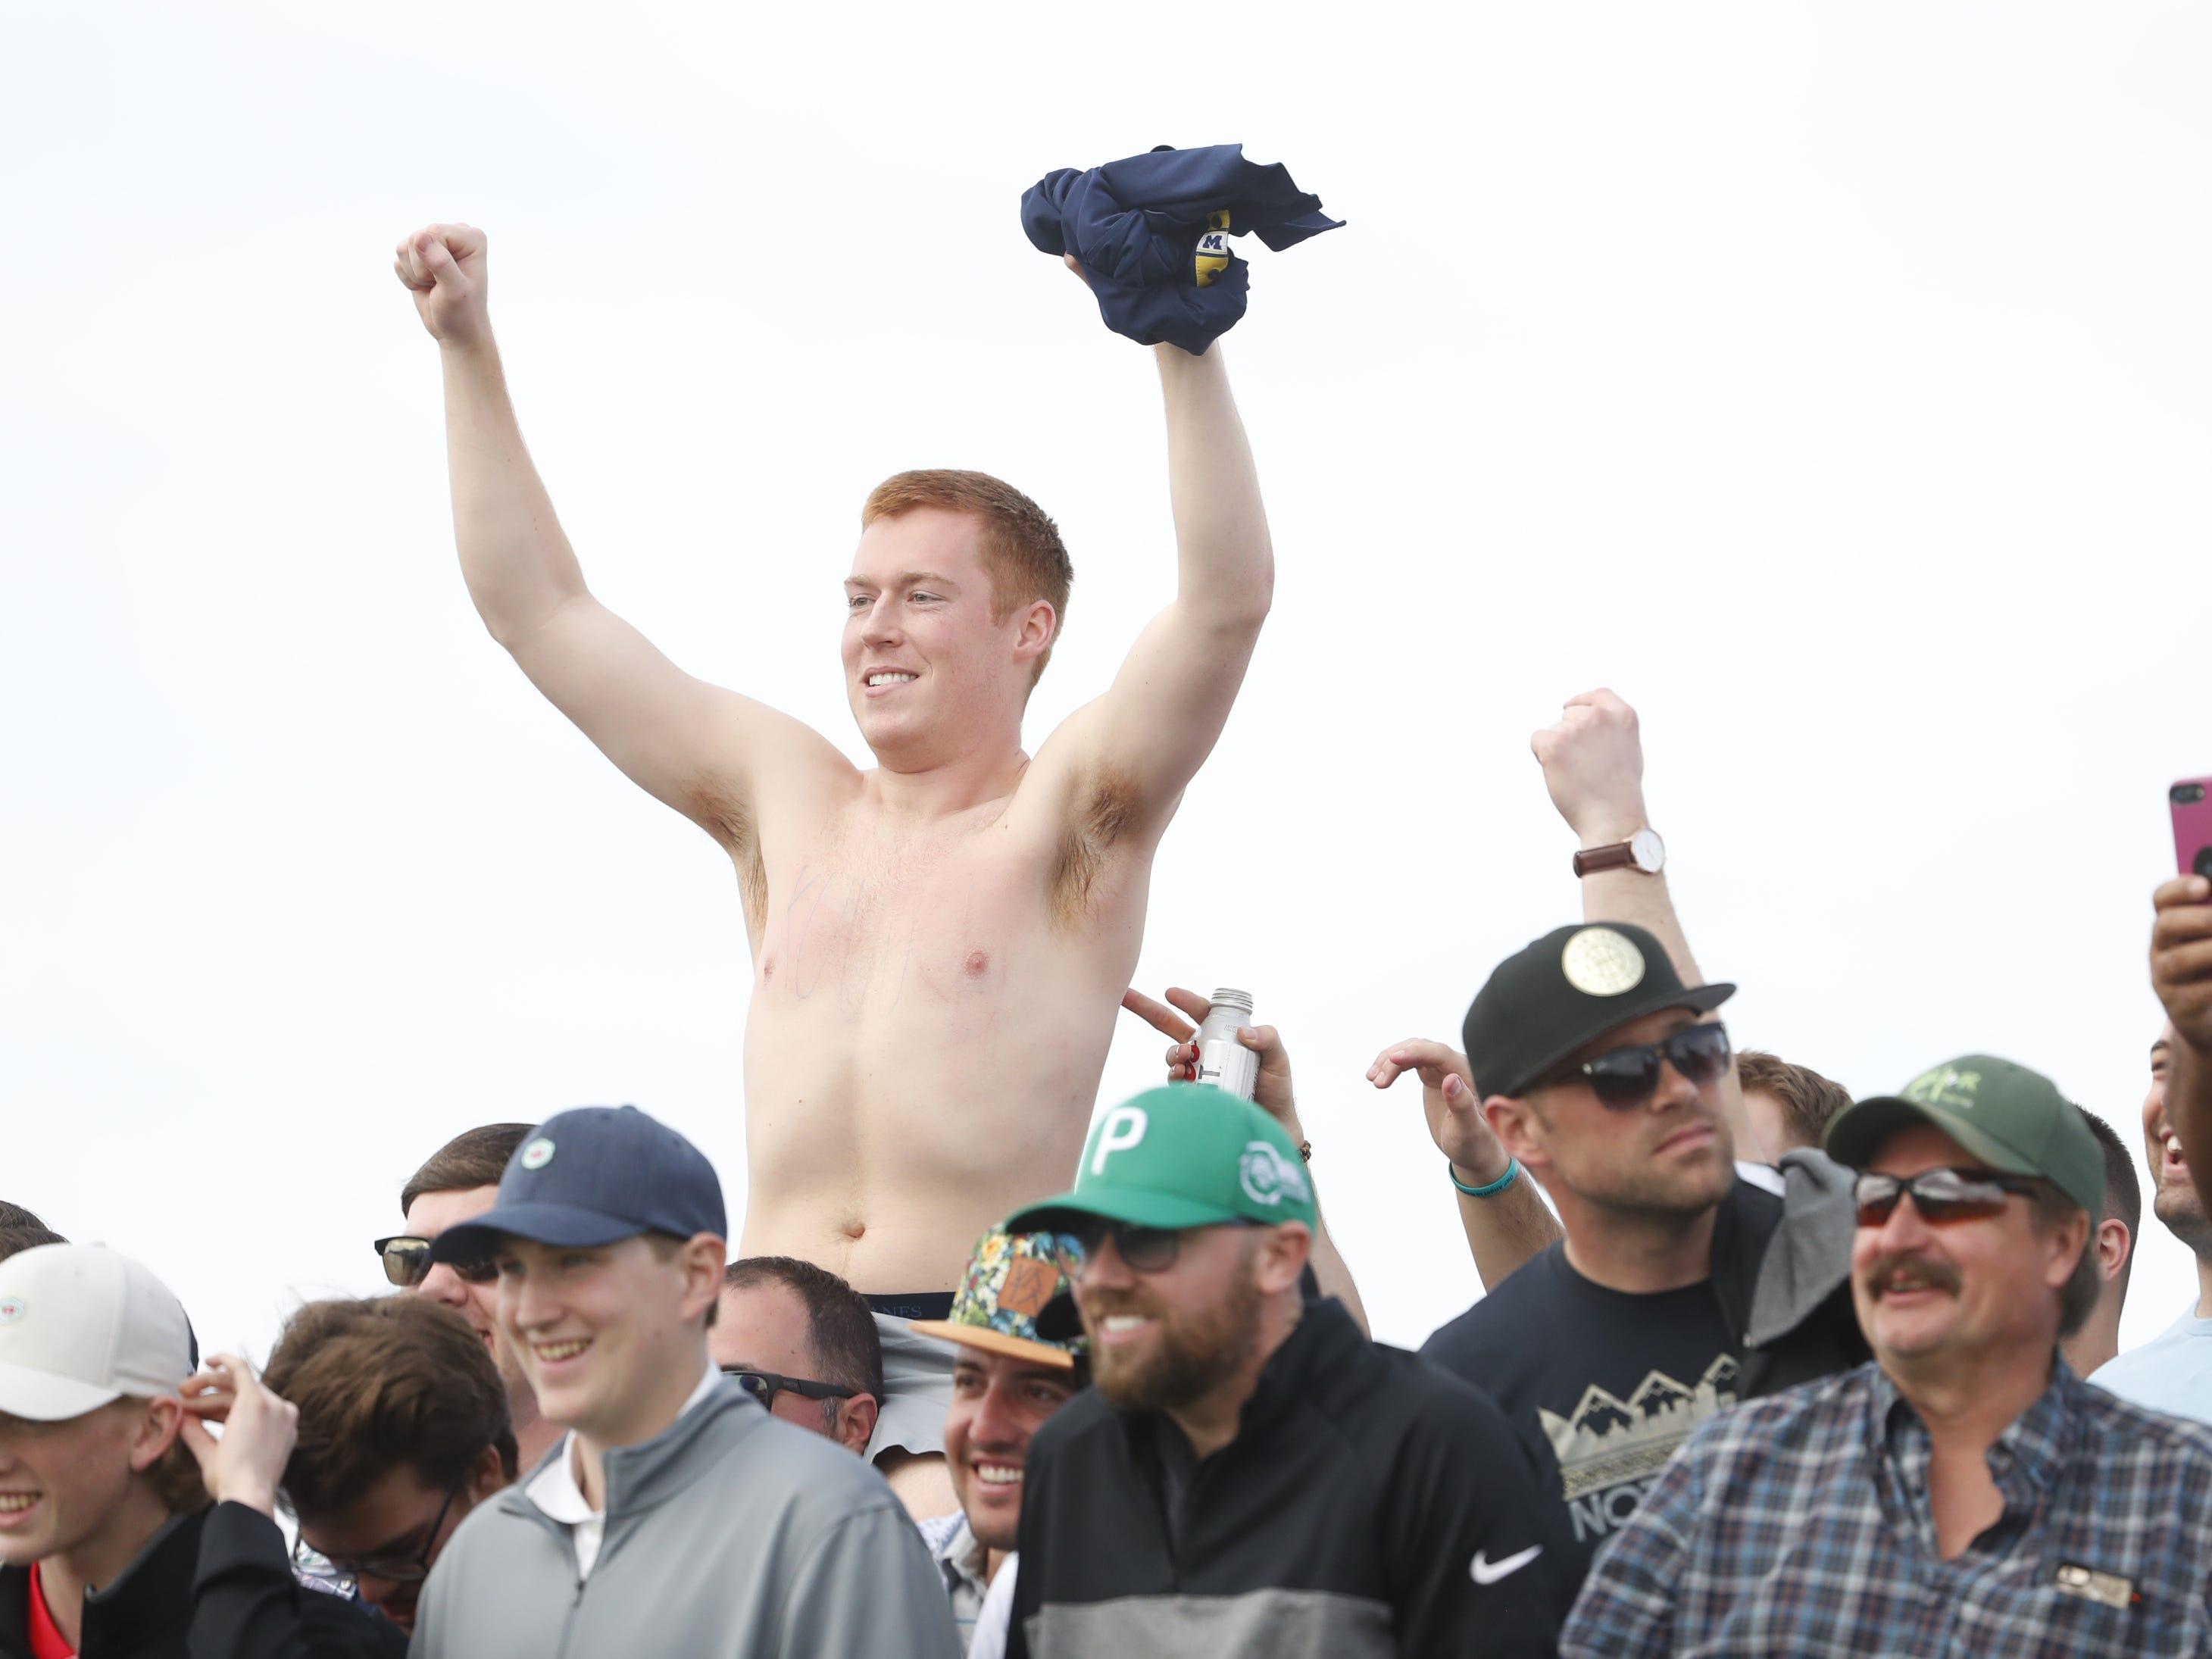 A fan takes off his shirt as Rickie Fowler takes to the tee box on the 15th hole during the third round of the Waste Management Phoenix Open at TPC Scottsdale in Scottsdale, Ariz. on February 2, 2019.